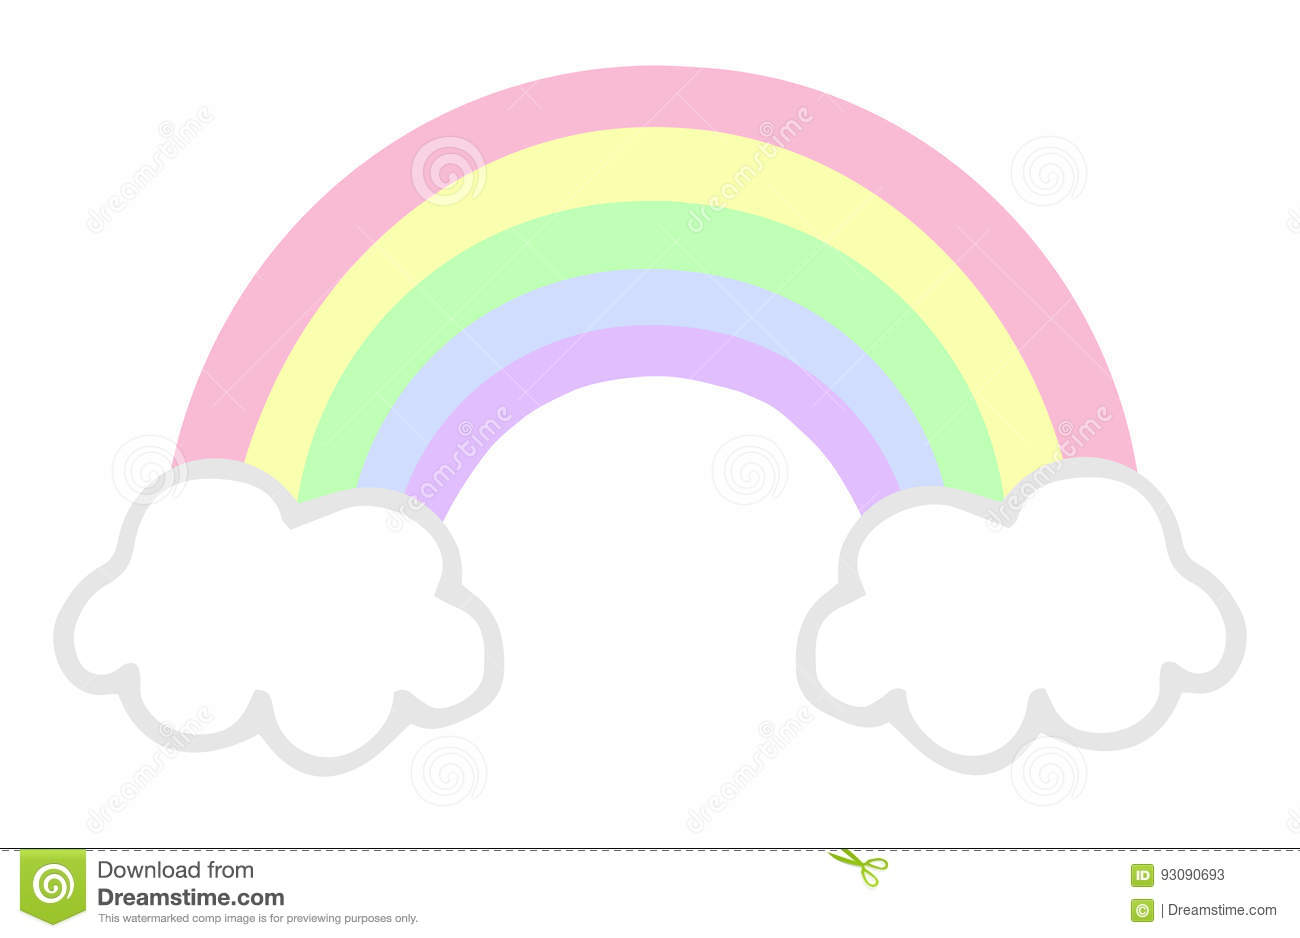 Pastel rainbow stock vector. Illustration of cute, contour ...